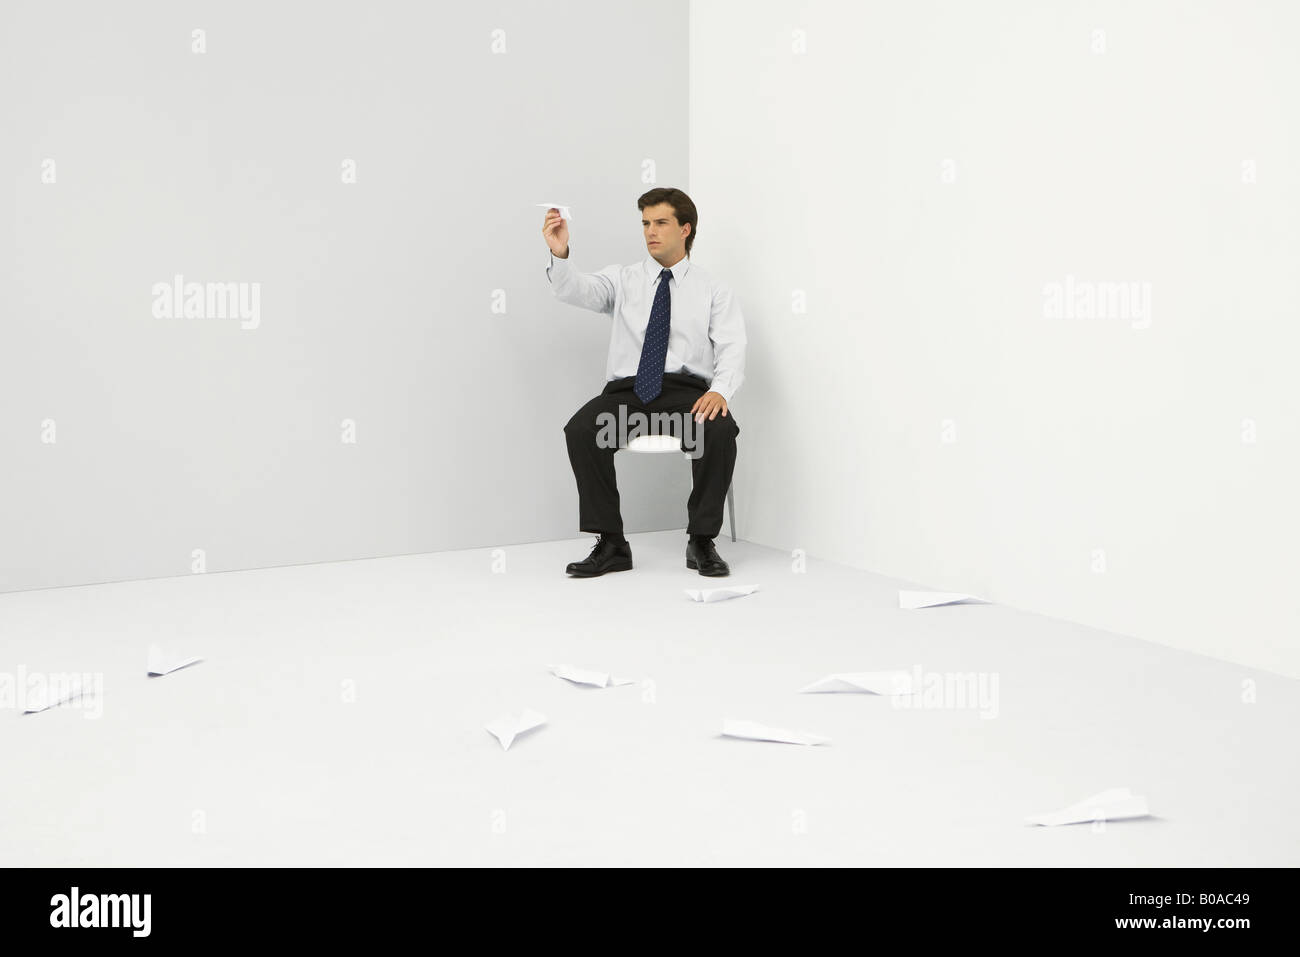 Male professional sitting in corner, throwing paper airplanes - Stock Image